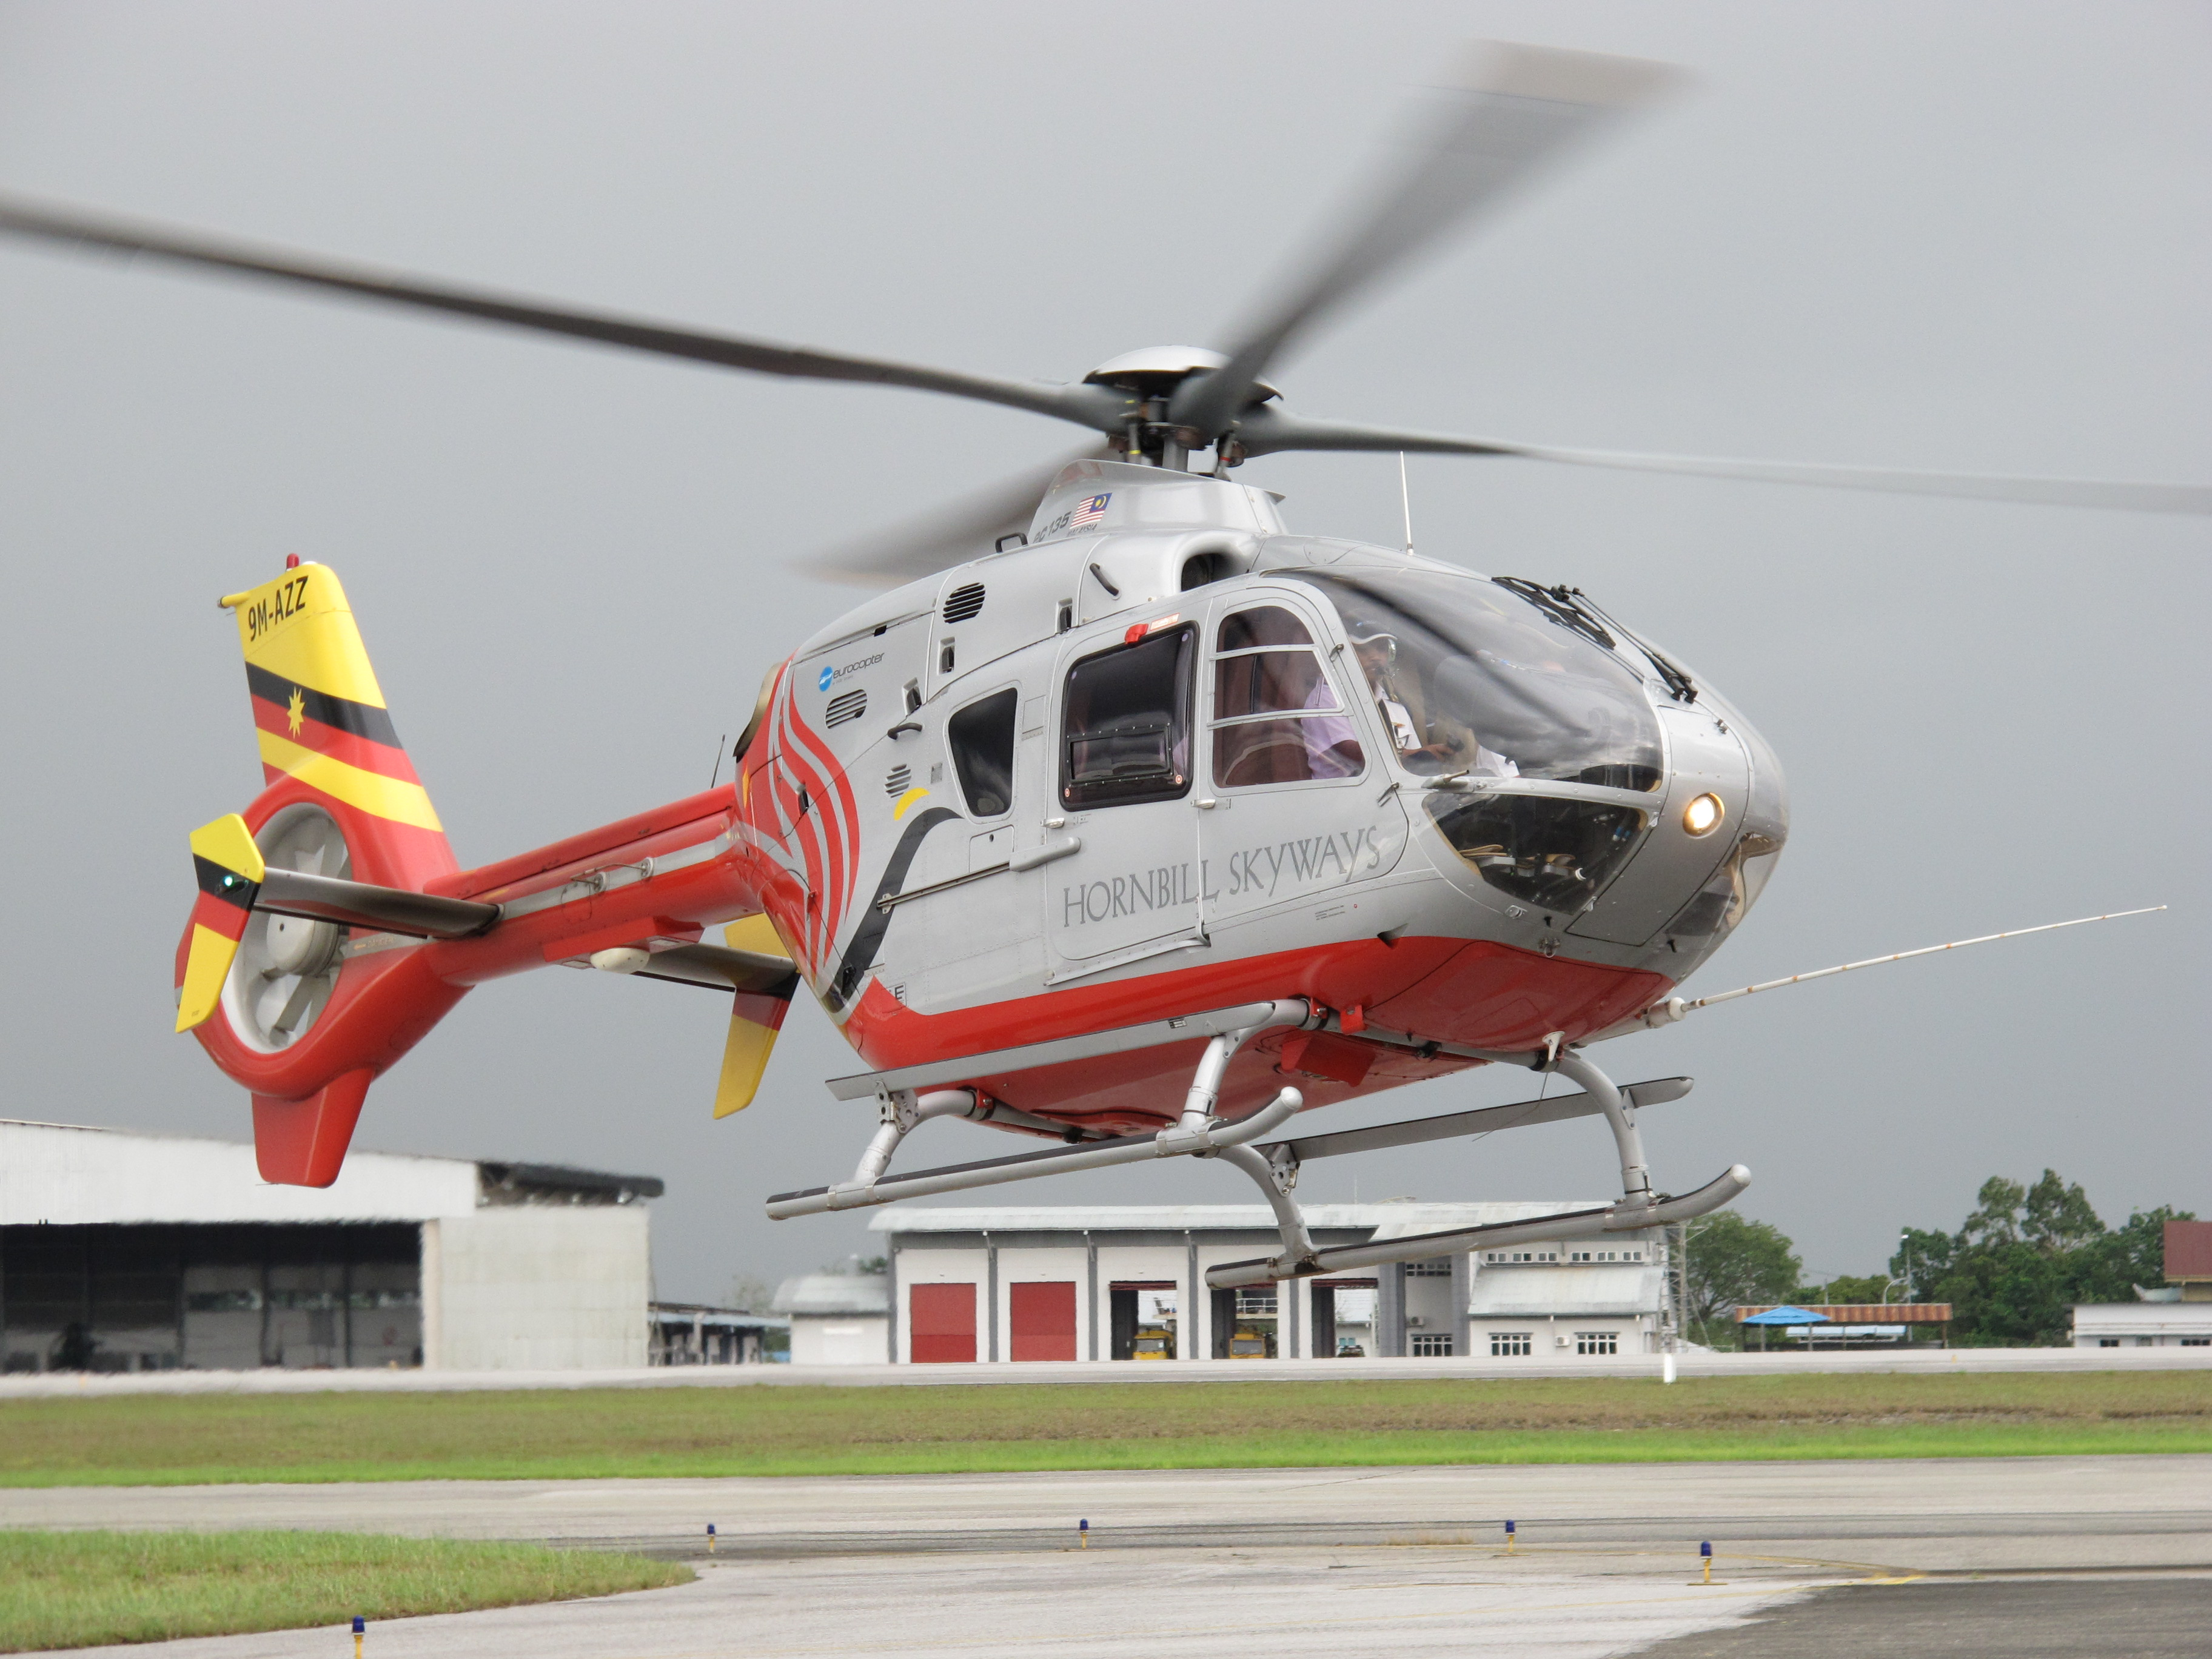 Eurocopter Malaysia Signs Contract To Upgrade Hornbill Skyways Ec135 Fleet Airbus Helicopters Press Release Pressebox